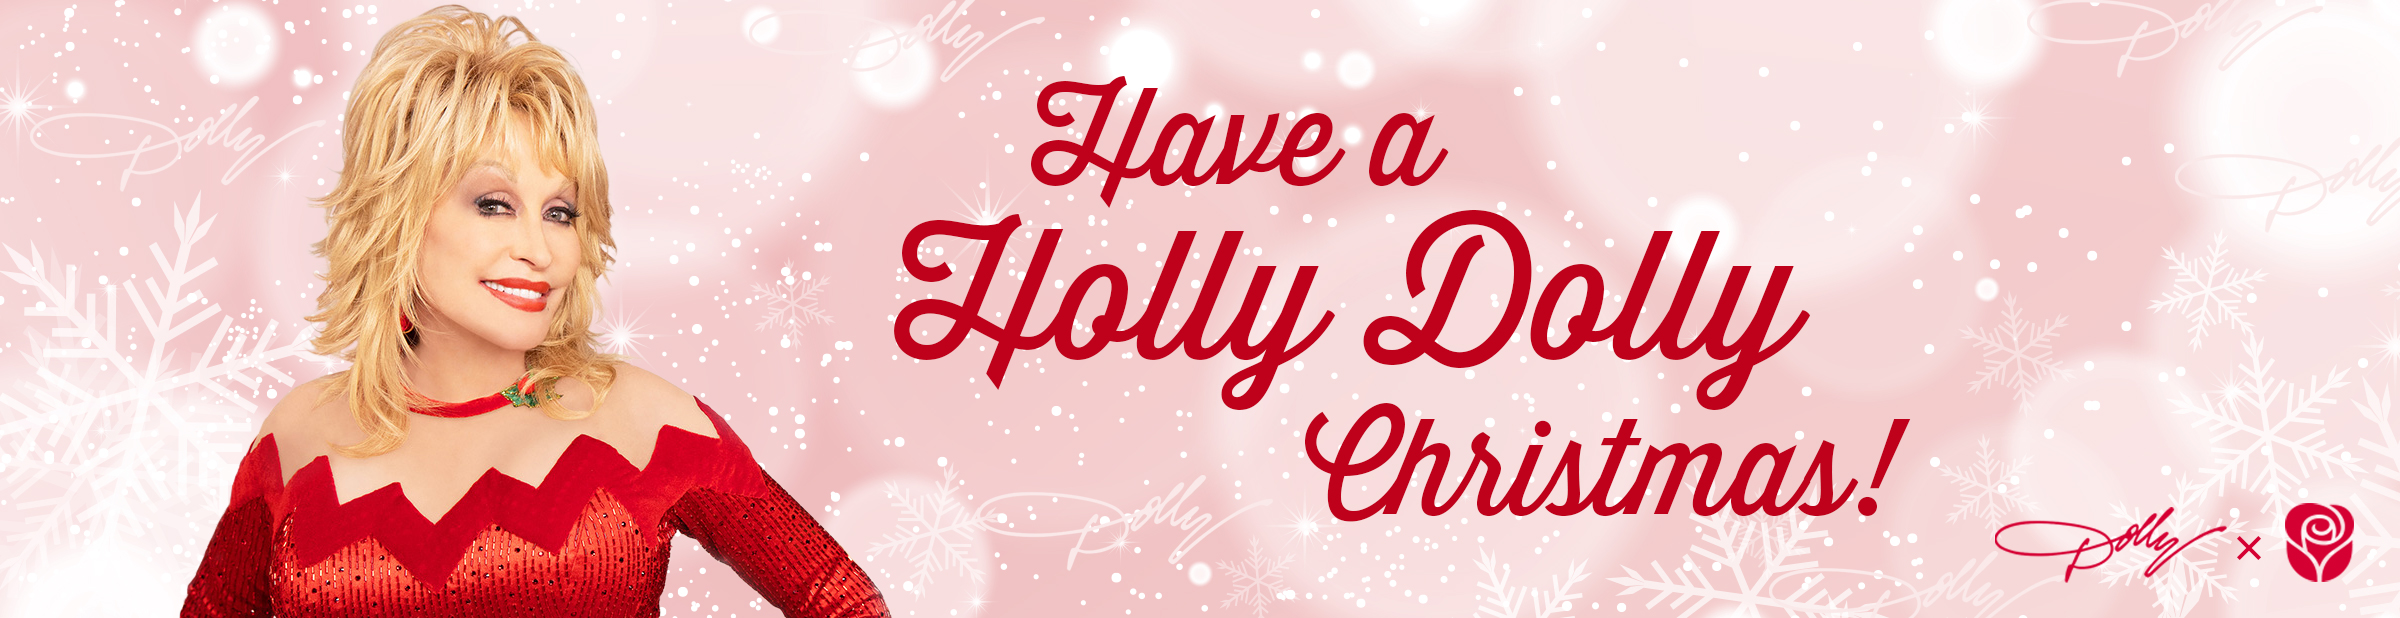 Holly Dolly Banner